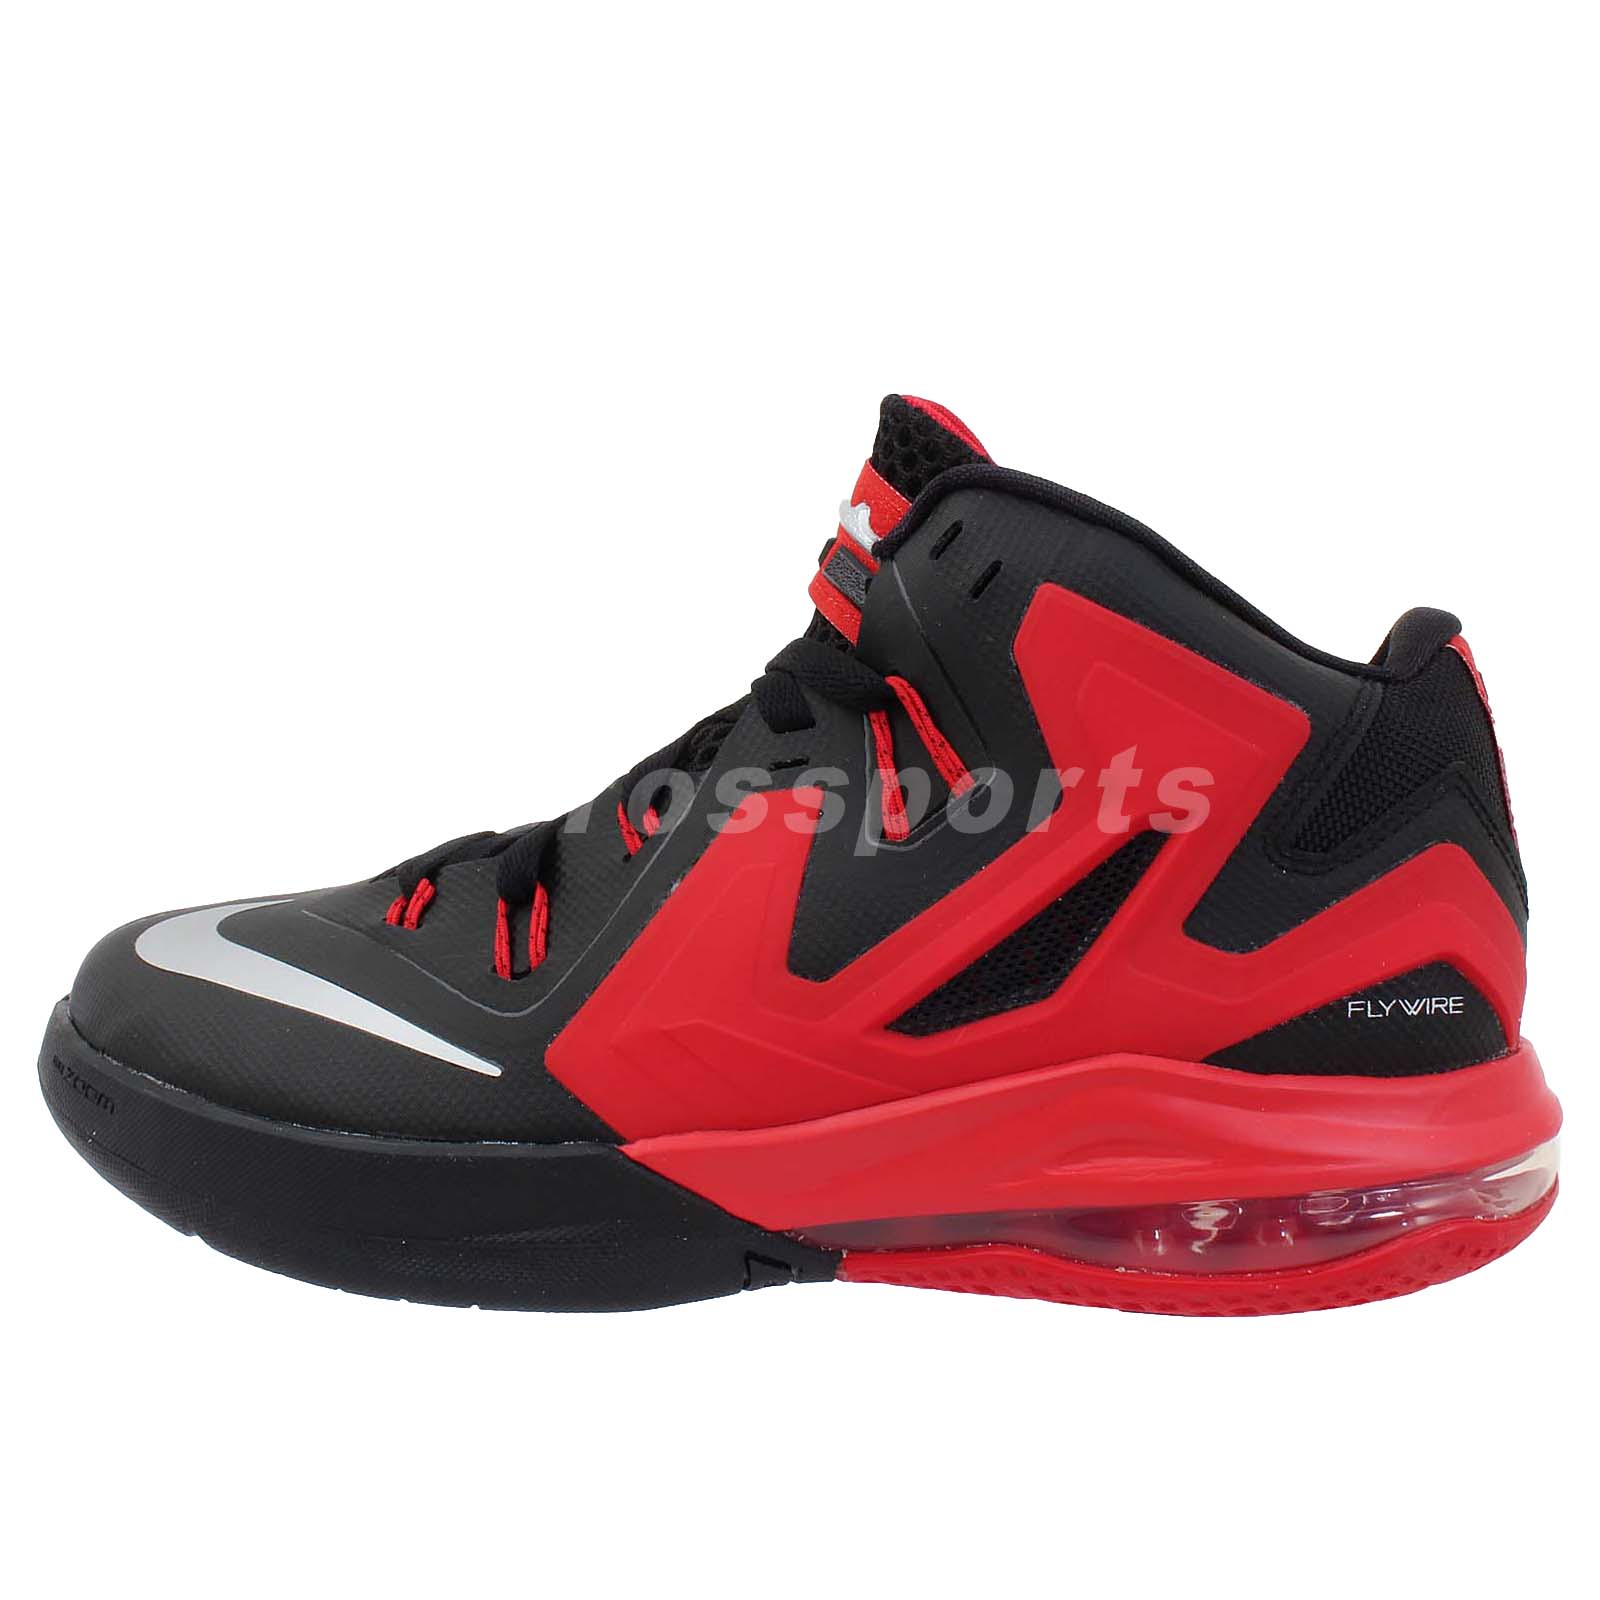 lebron flywire 2013 nike flywire shoes price provincial